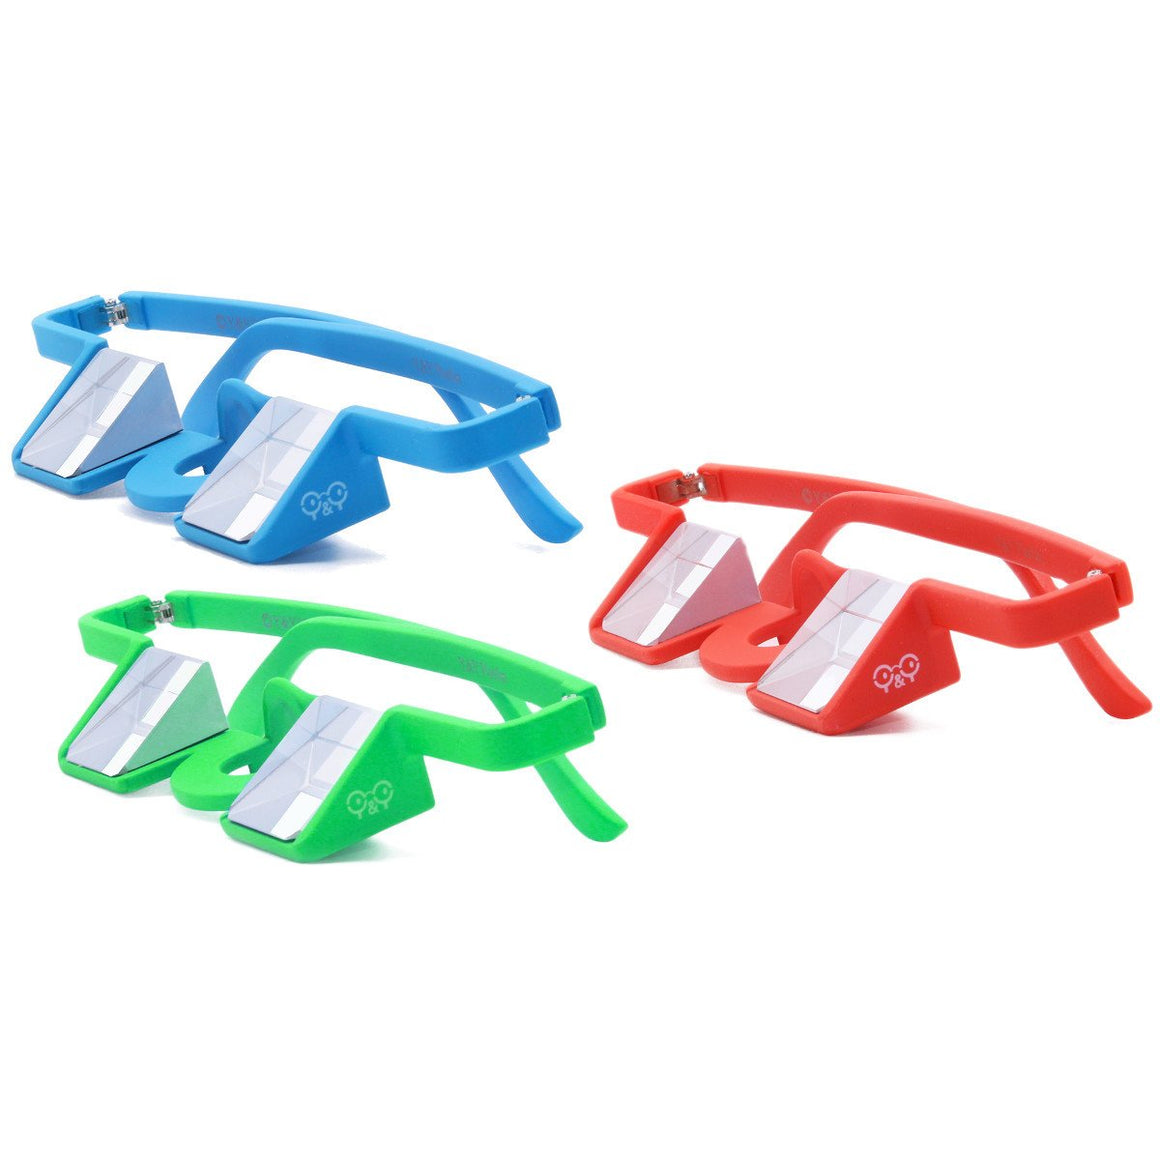 Y&Y Plasfun Belay Glasses for climbing, three colours red, blue and green